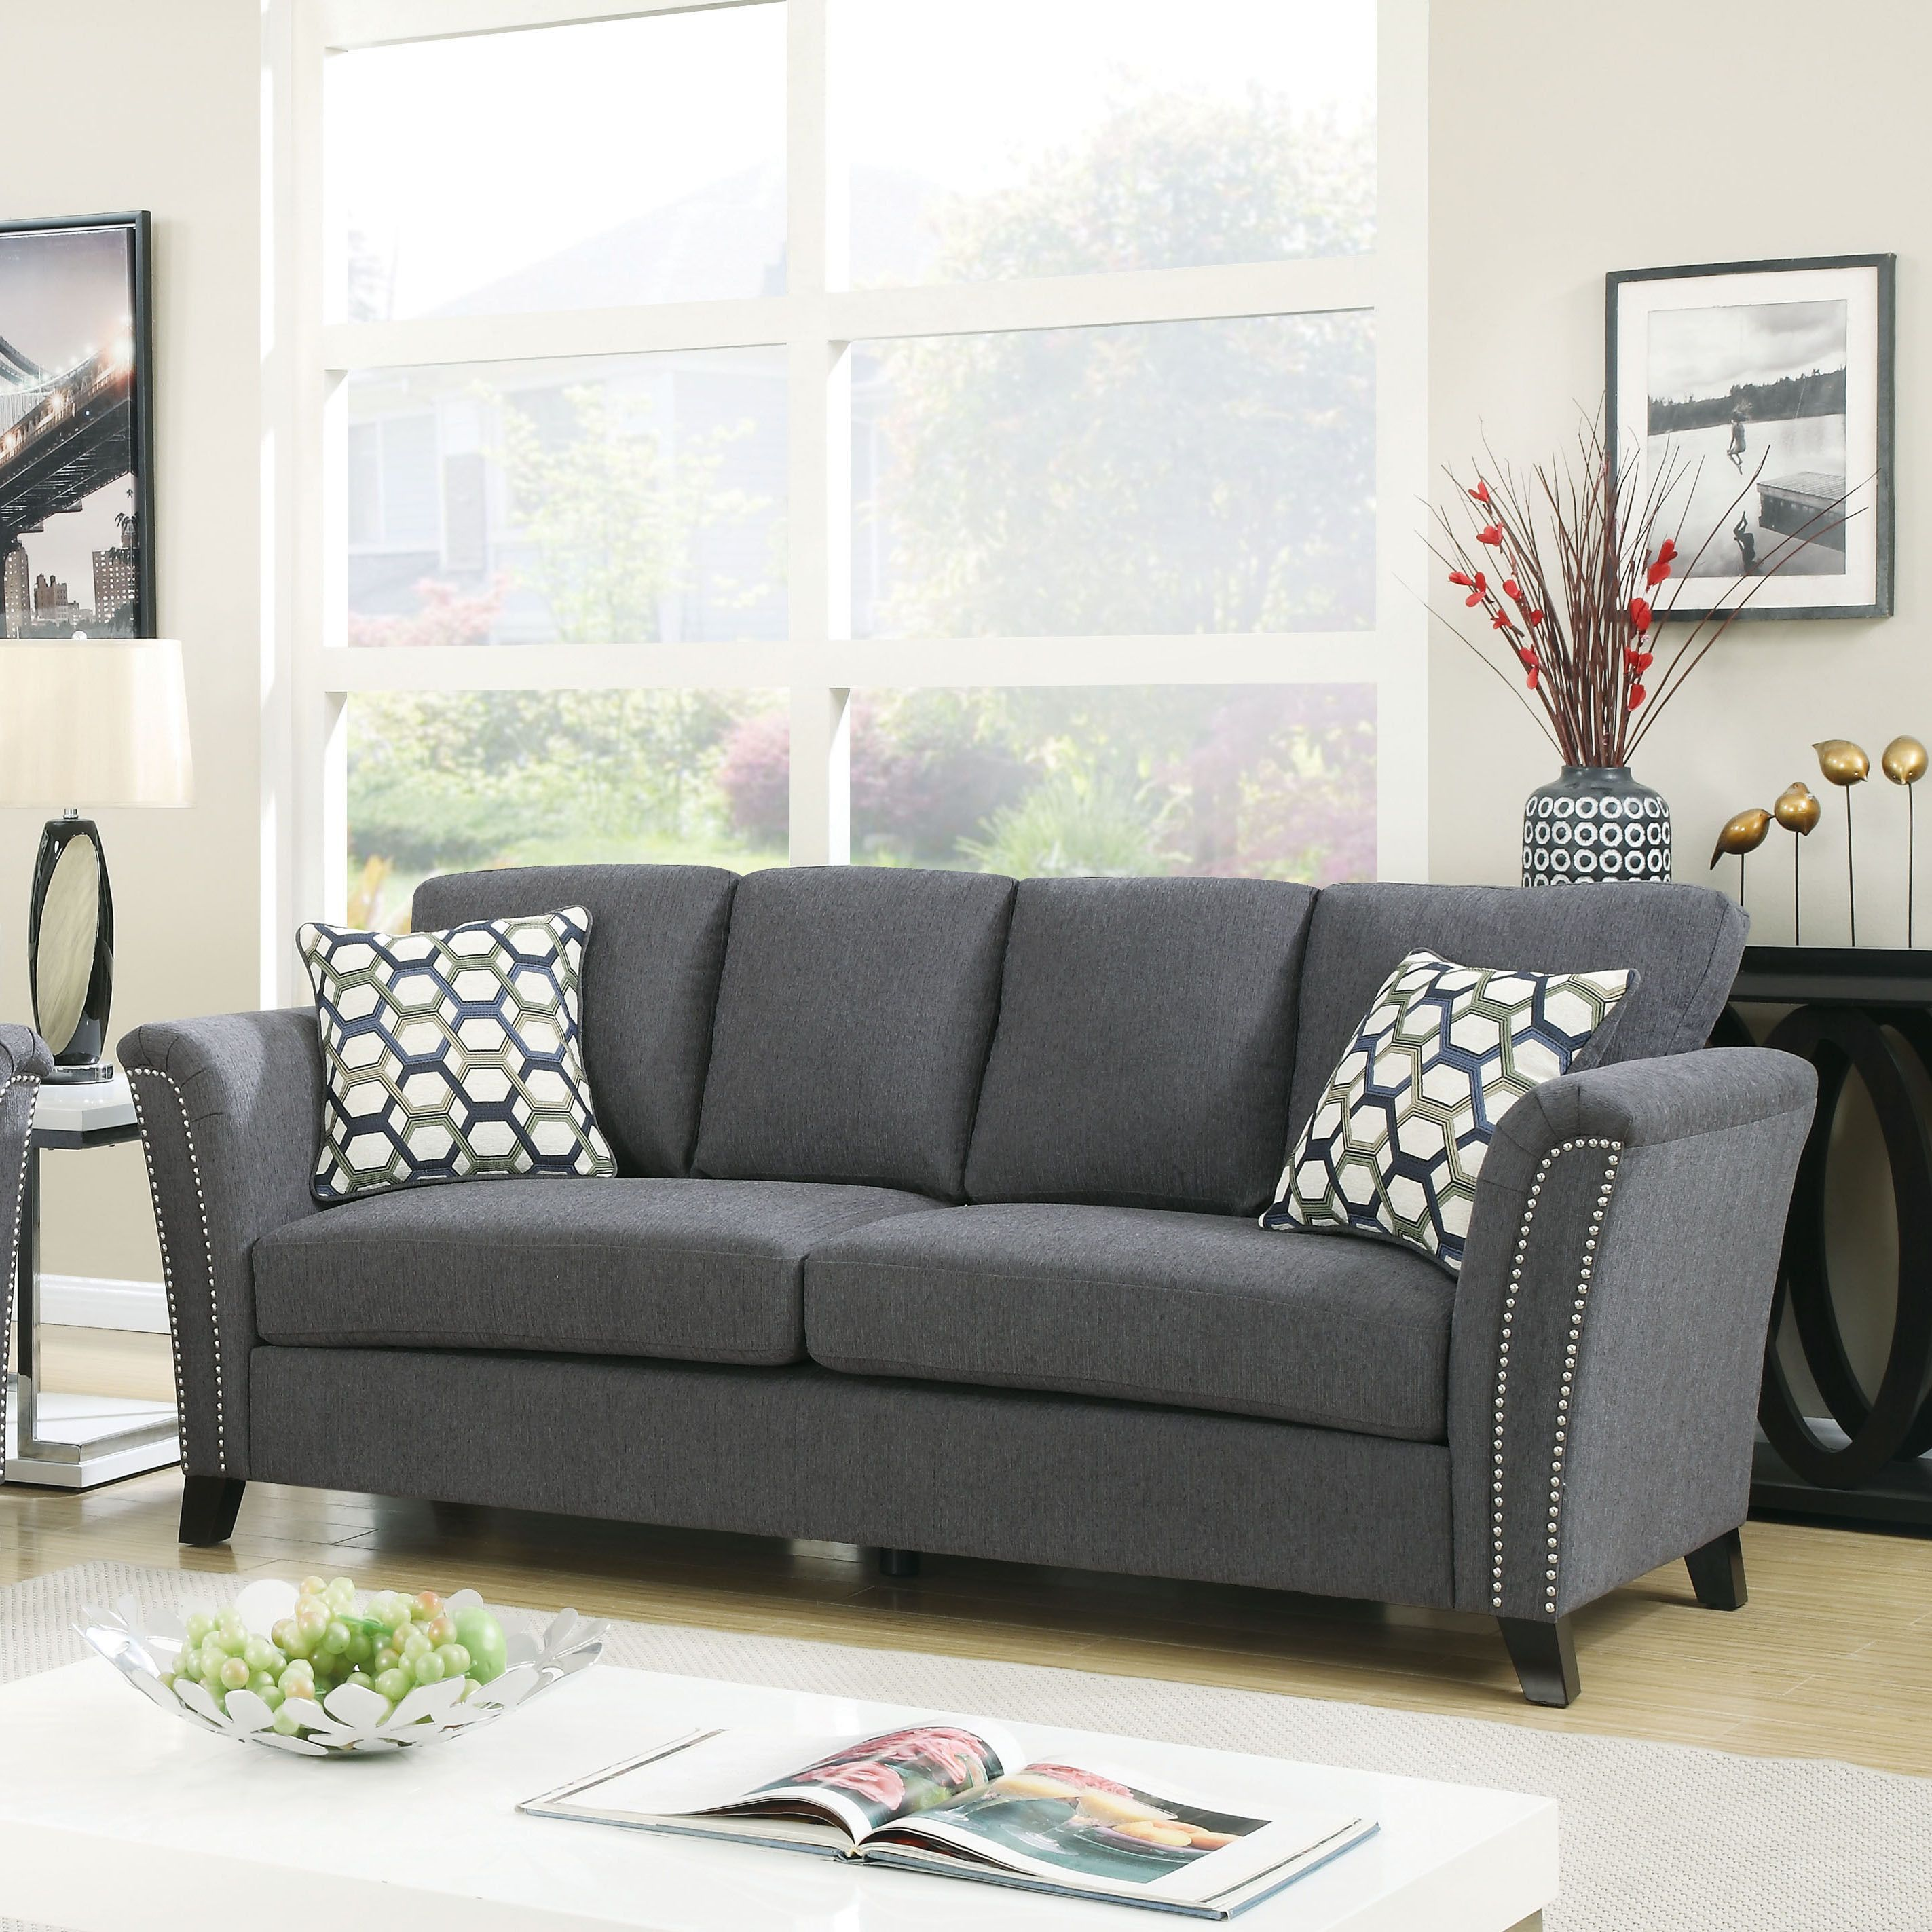 Online Shopping Bedding Furniture Electronics Jewelry Clothing More Furniture Home Decor Furniture Of America